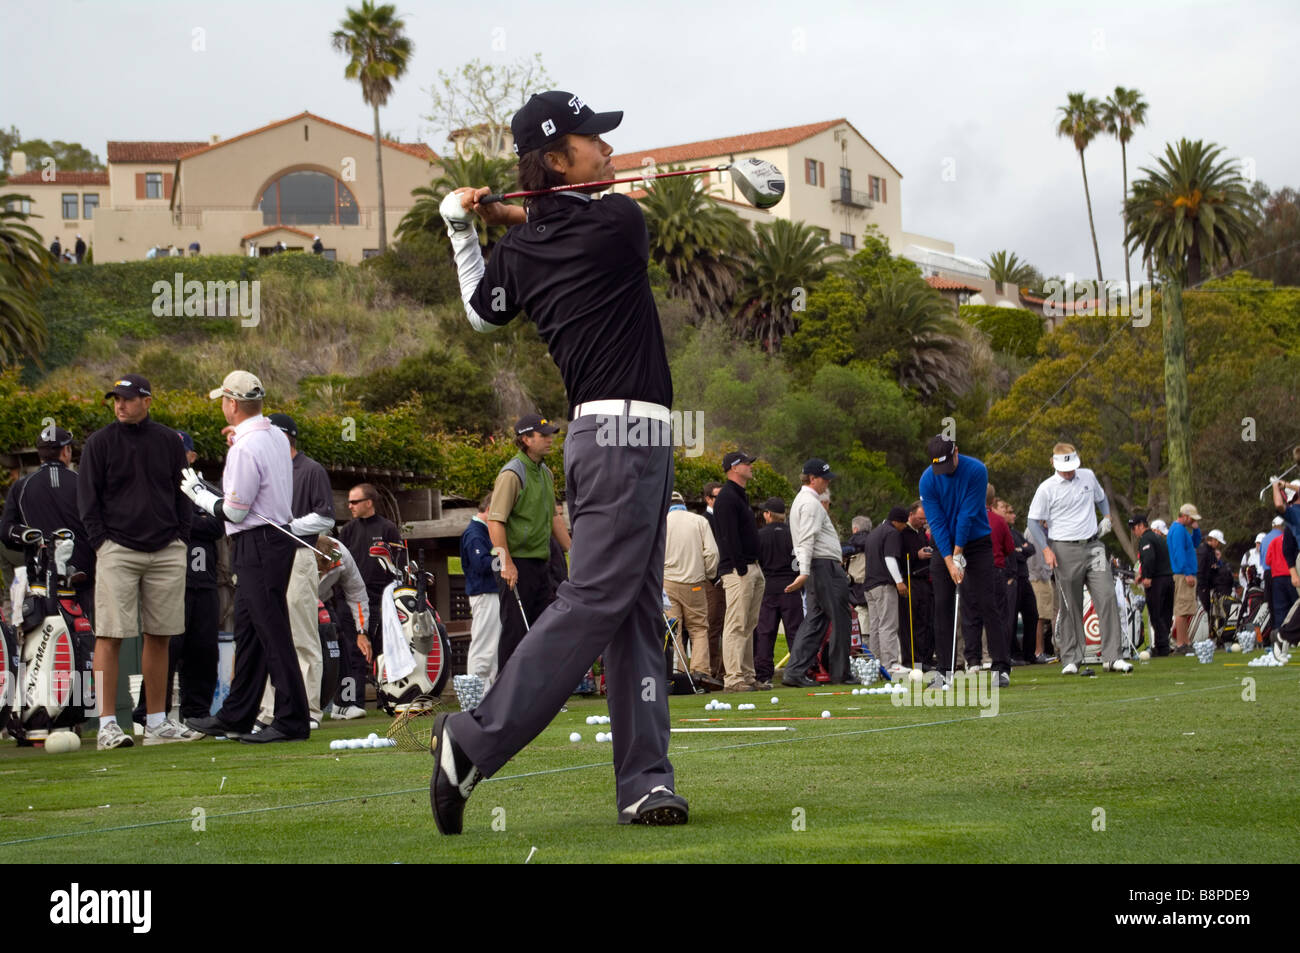 Kevin Na hits some balls at the driving range at the Northern Trust Open. - Stock Image